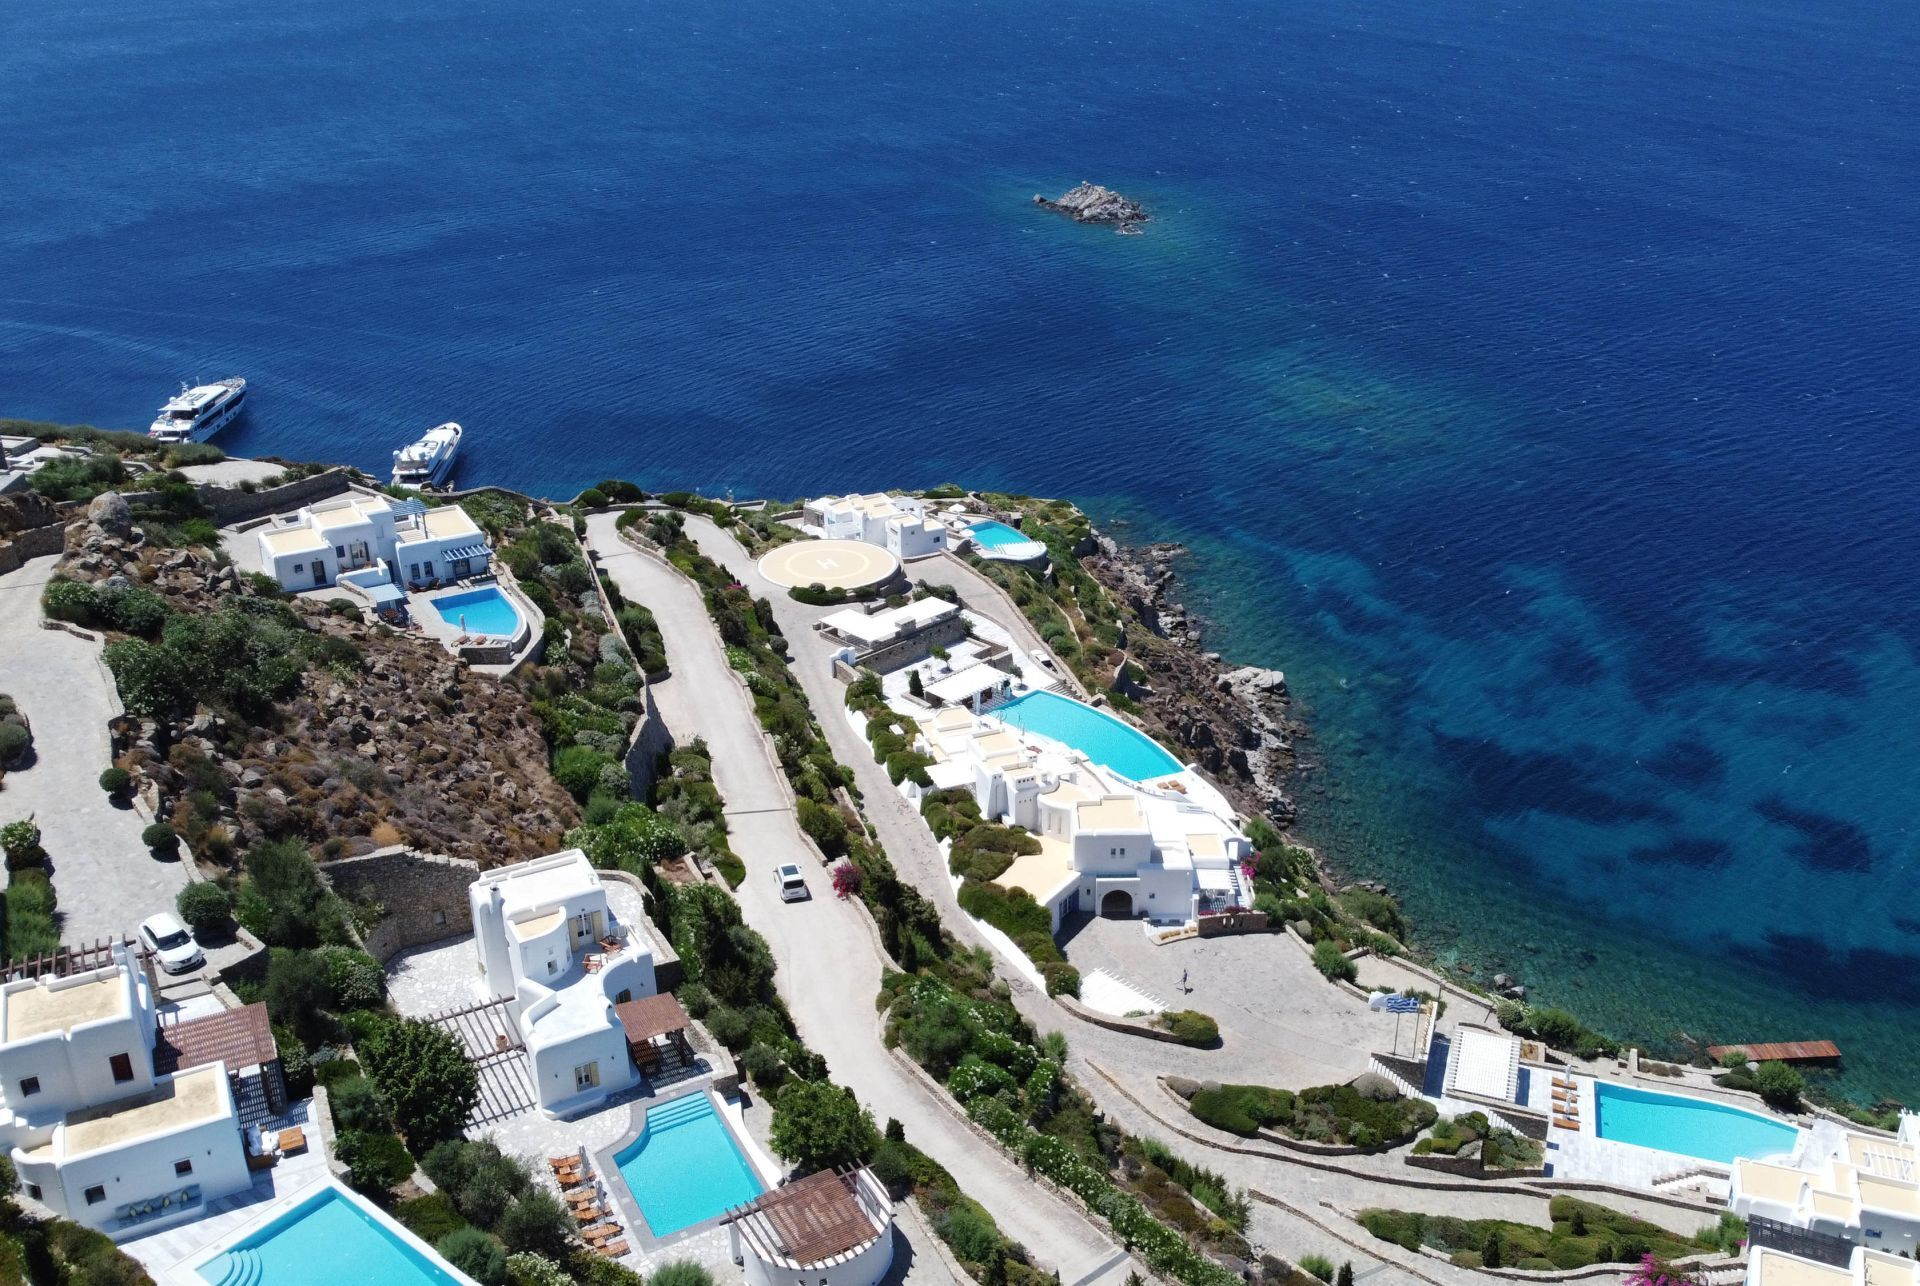 Accommodation and hotels in Mykonos